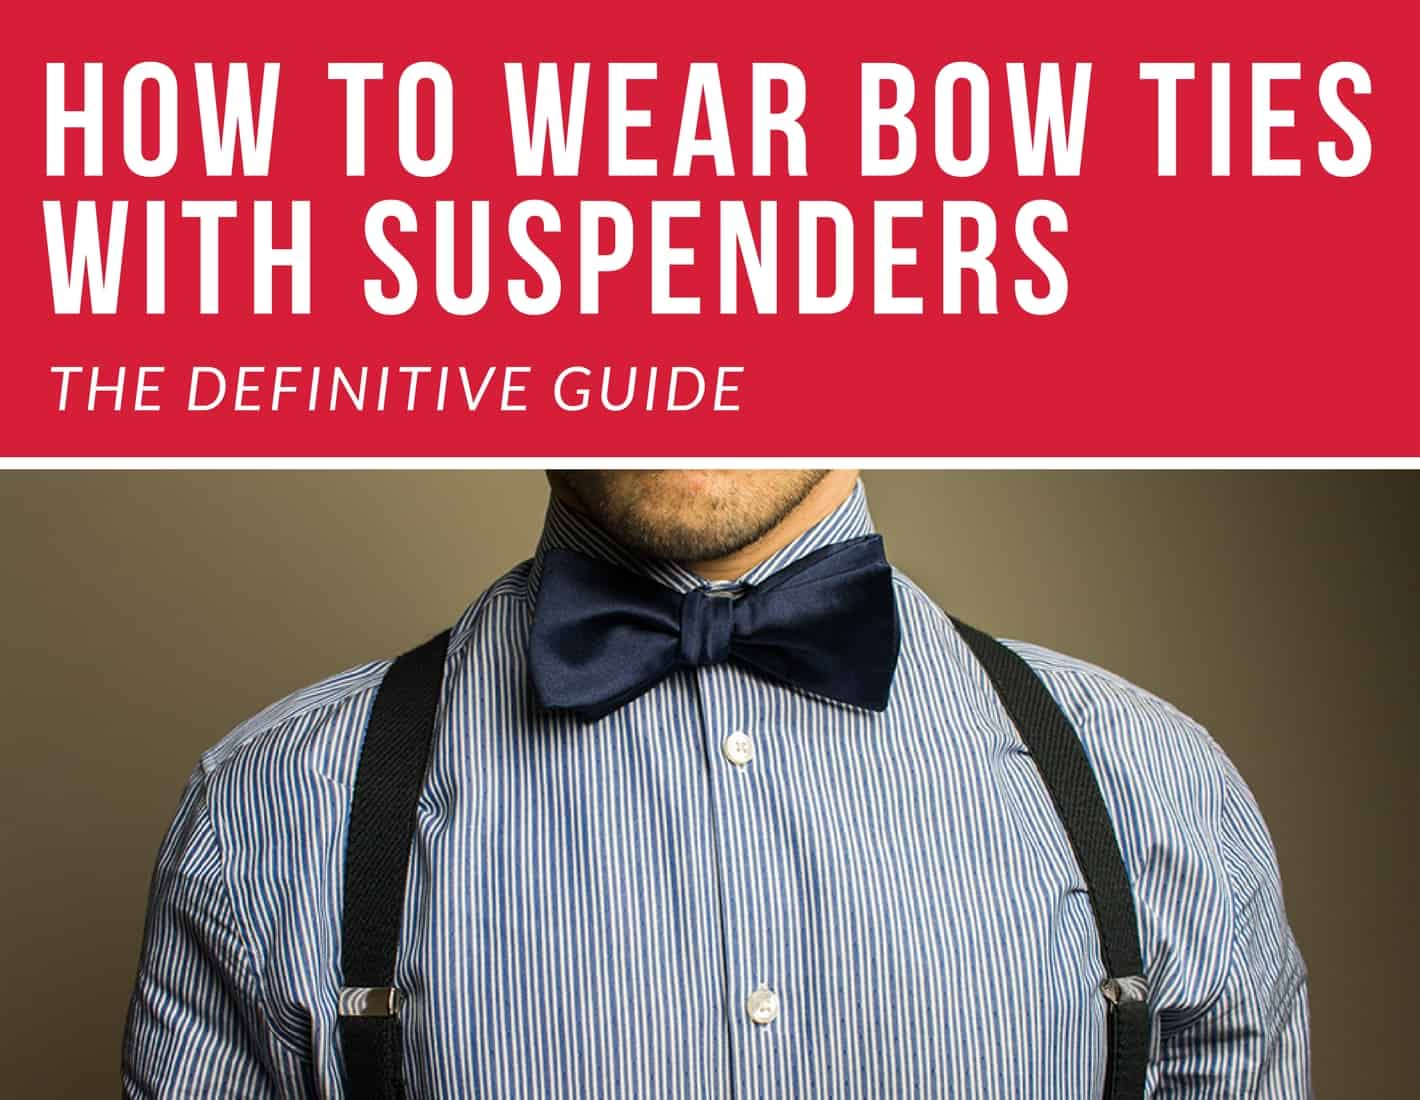 d57a1dac2a1a How To Wear – Bow Ties and Suspenders - The Bow Tie Guy